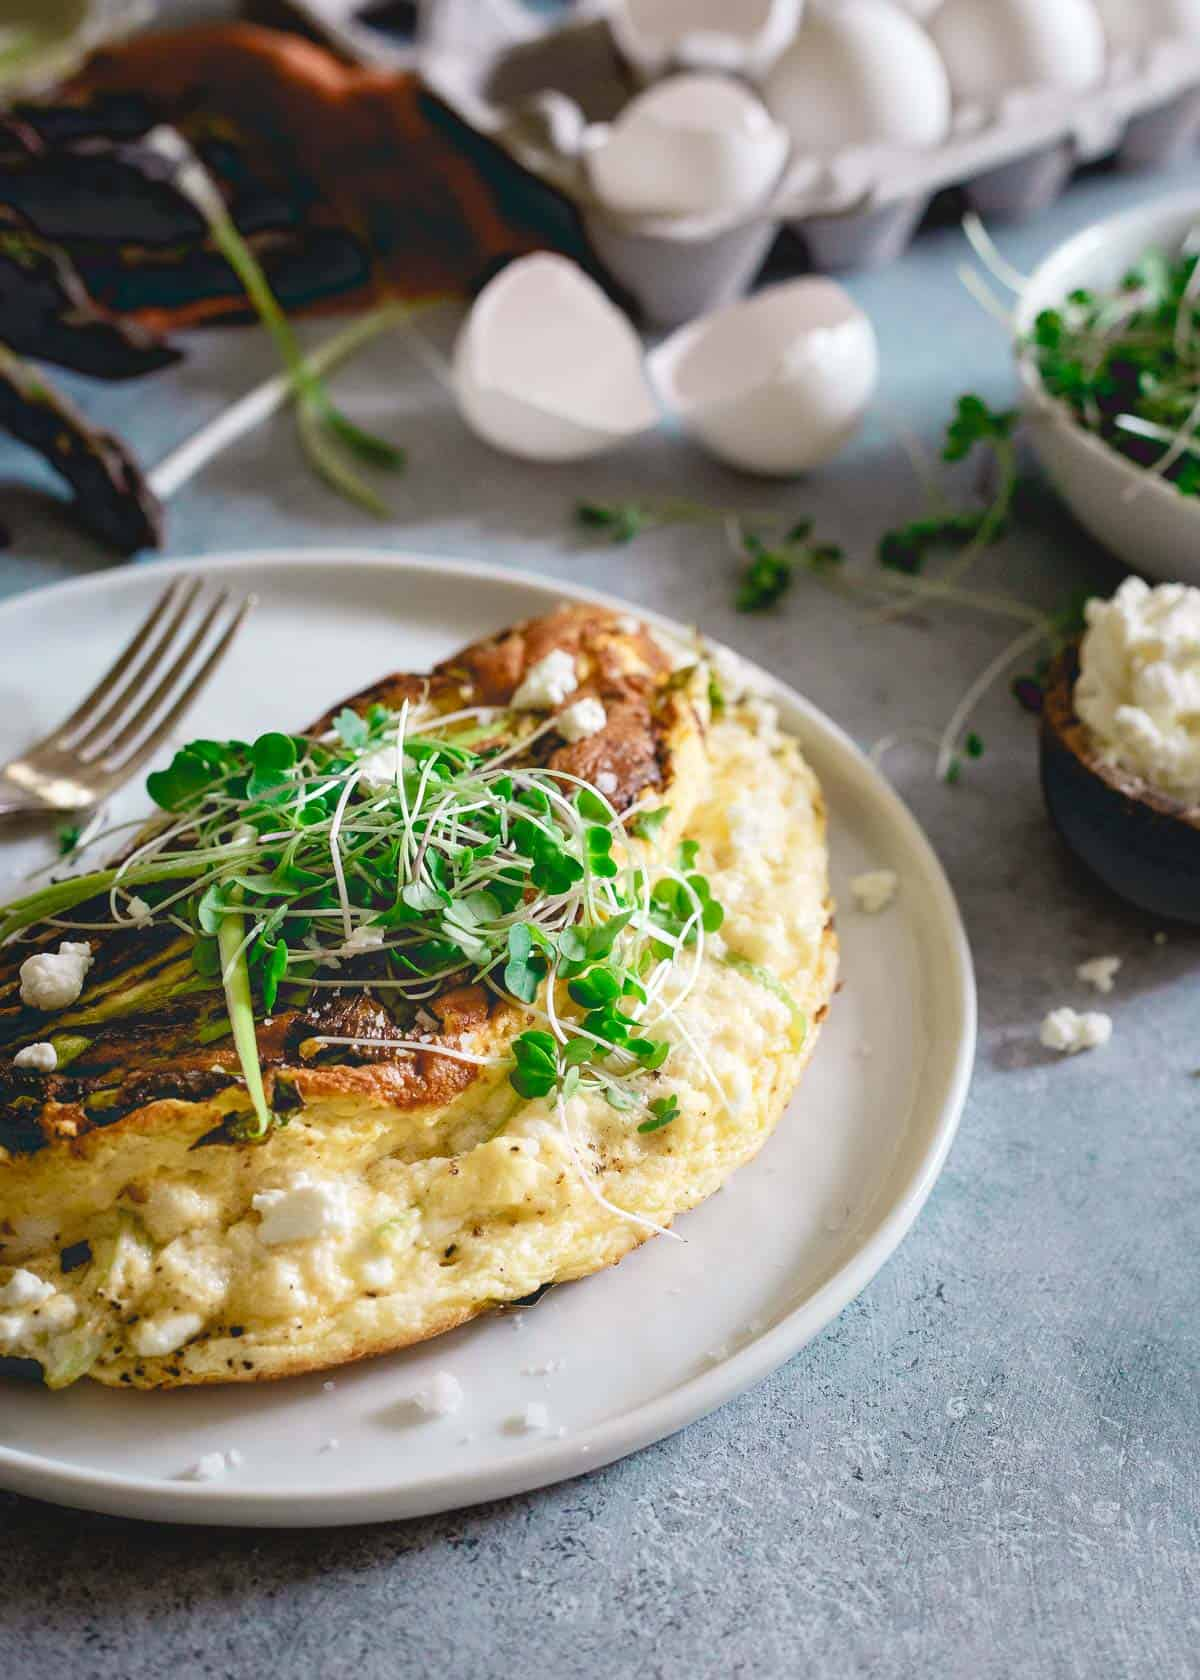 This omelette soufflé is a light and fluffy breakfast bursting with fresh spring ingredients like asparagus, green onions and creamy tart goat cheese.